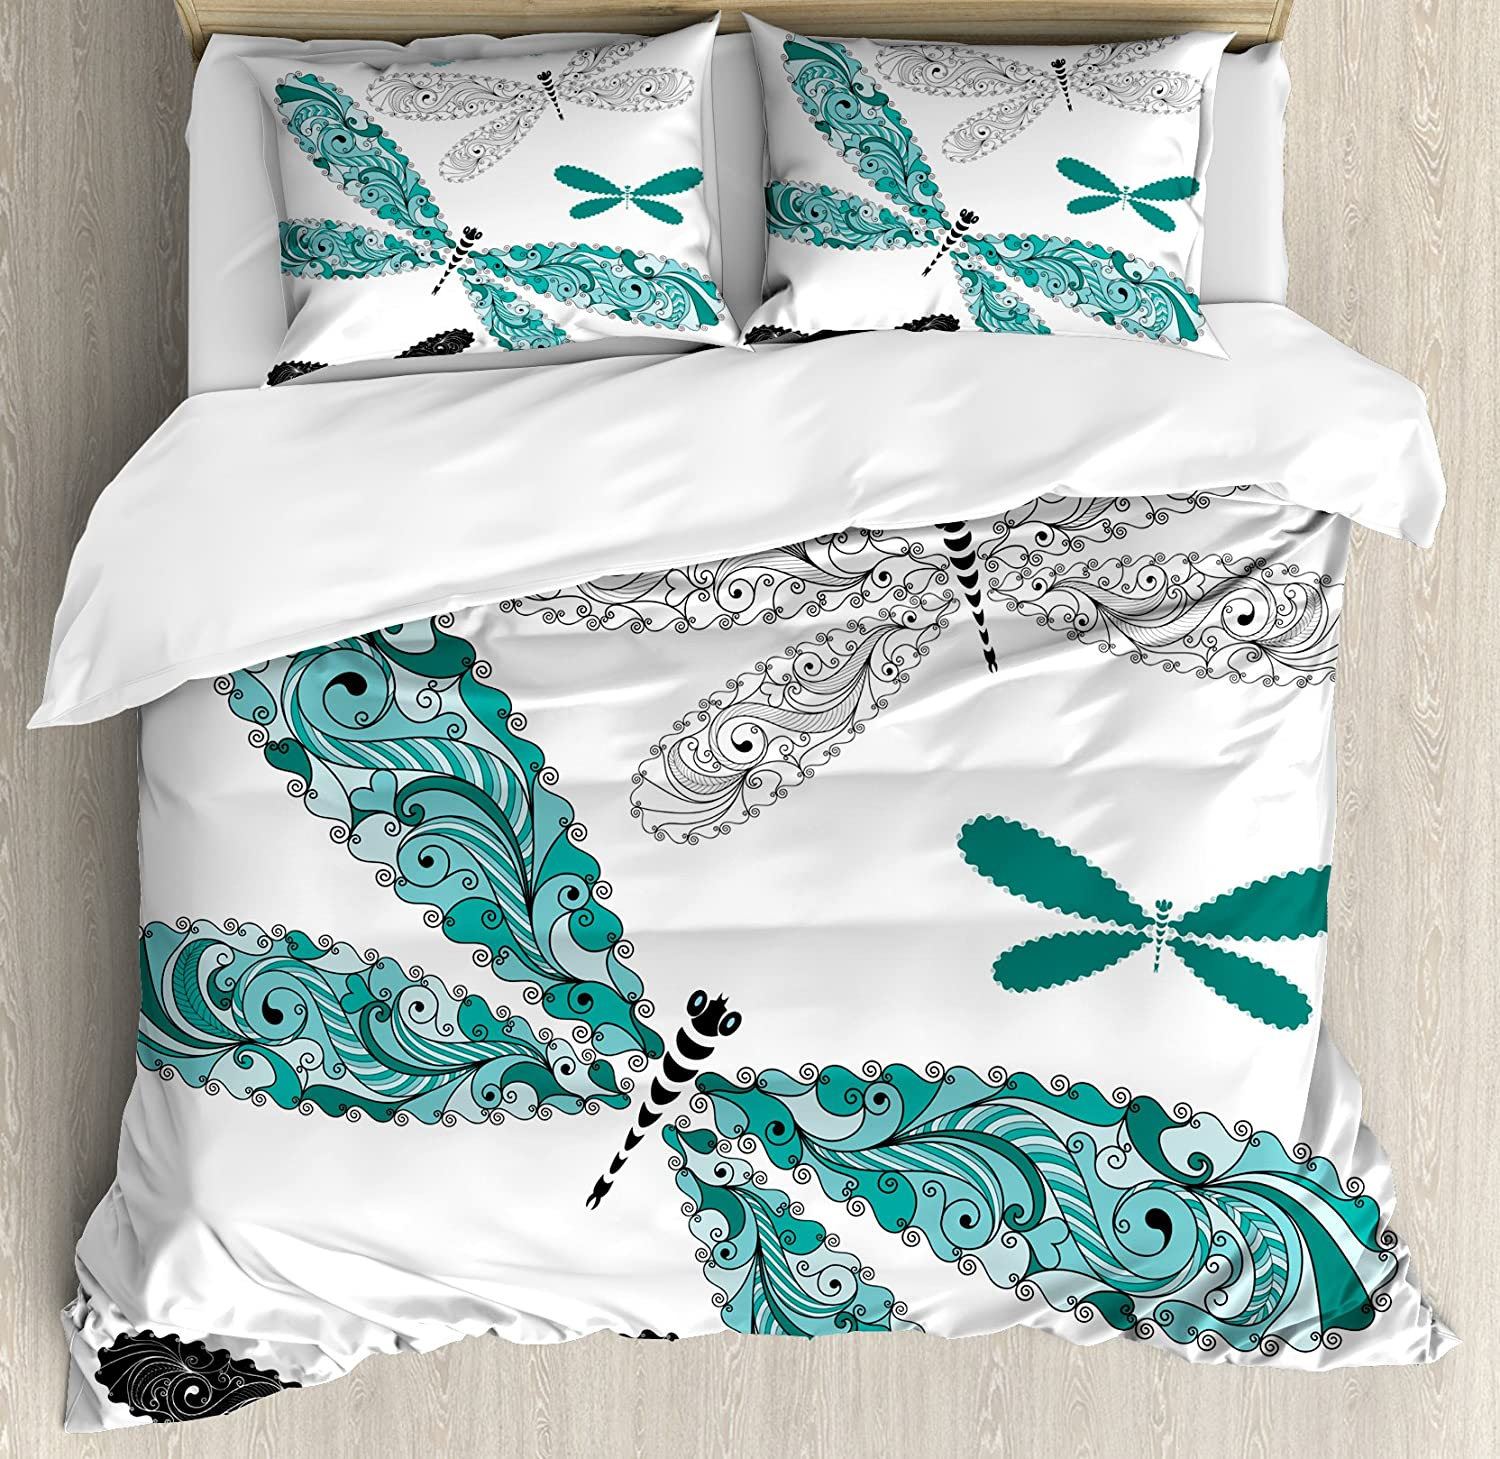 Ambesonne Dragonfly Duvet Cover Set, Ornamental Dragonfly with Lace and Damask Effects Image, Decorative 3 Piece Bedding Set with 2 Pillow Shams, Queen Size, Turquoise Black